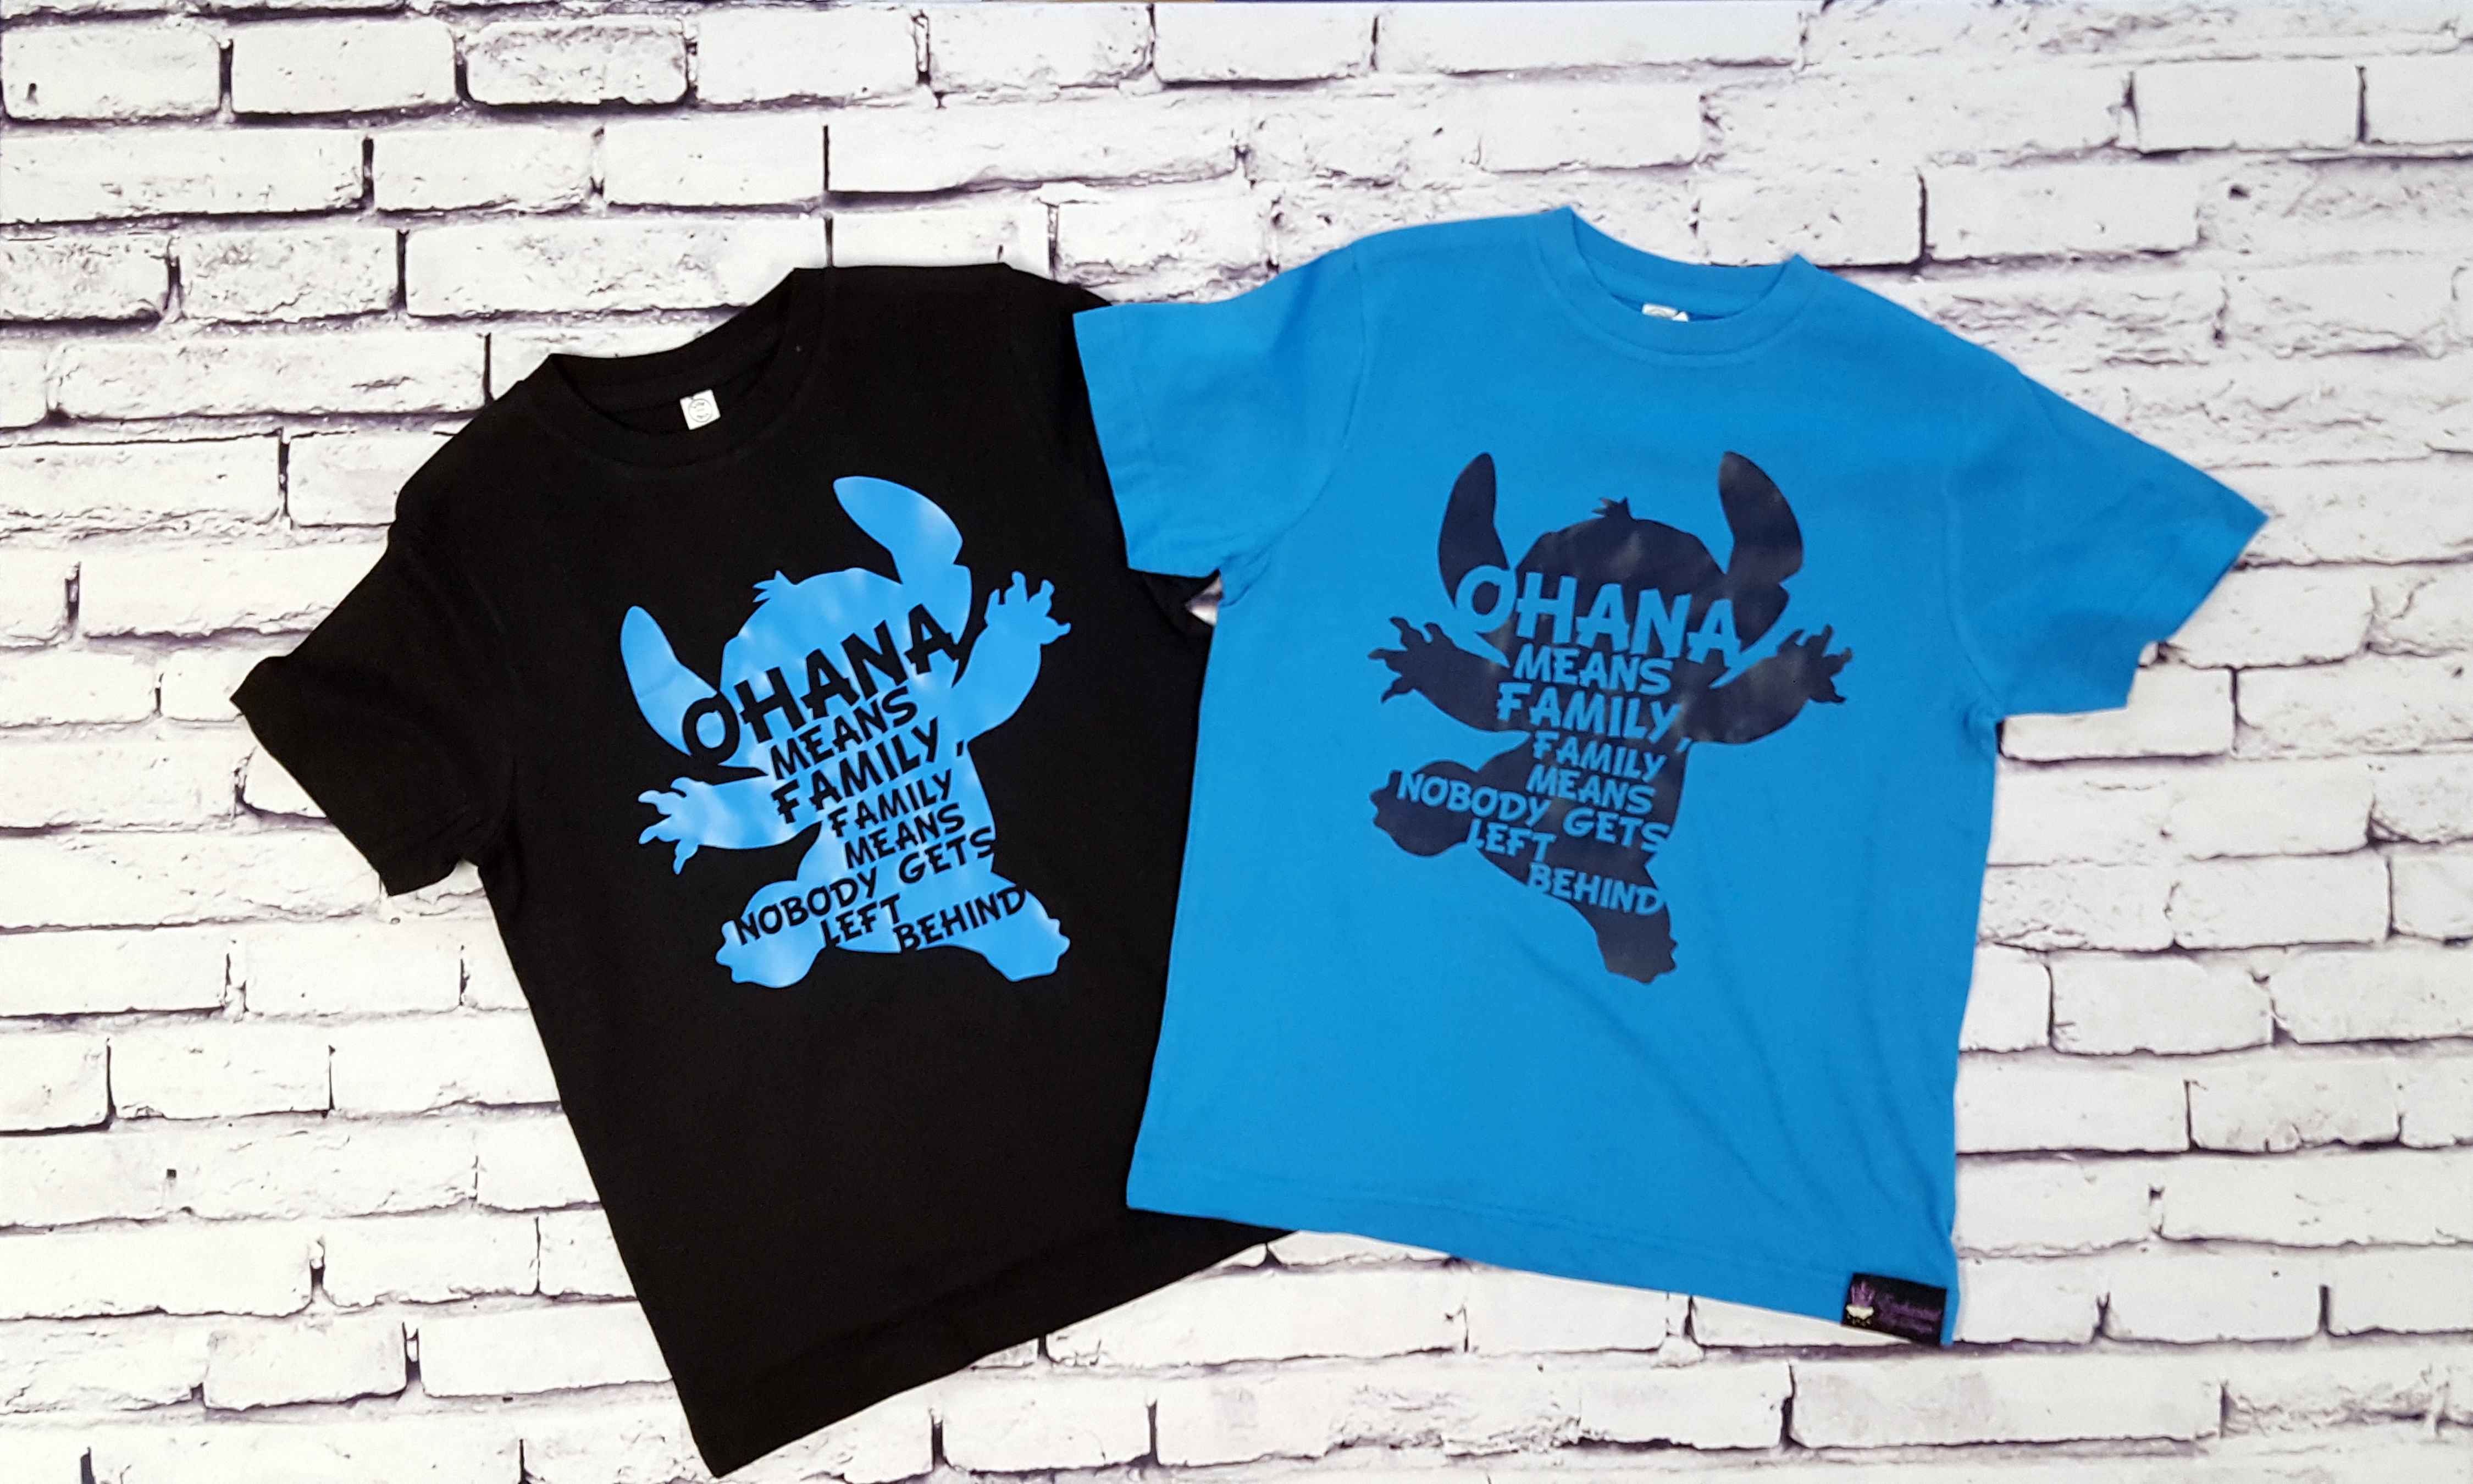 45684197 Ohana Means Family Tee Shirt For The Whole Family - Enchanted By Design